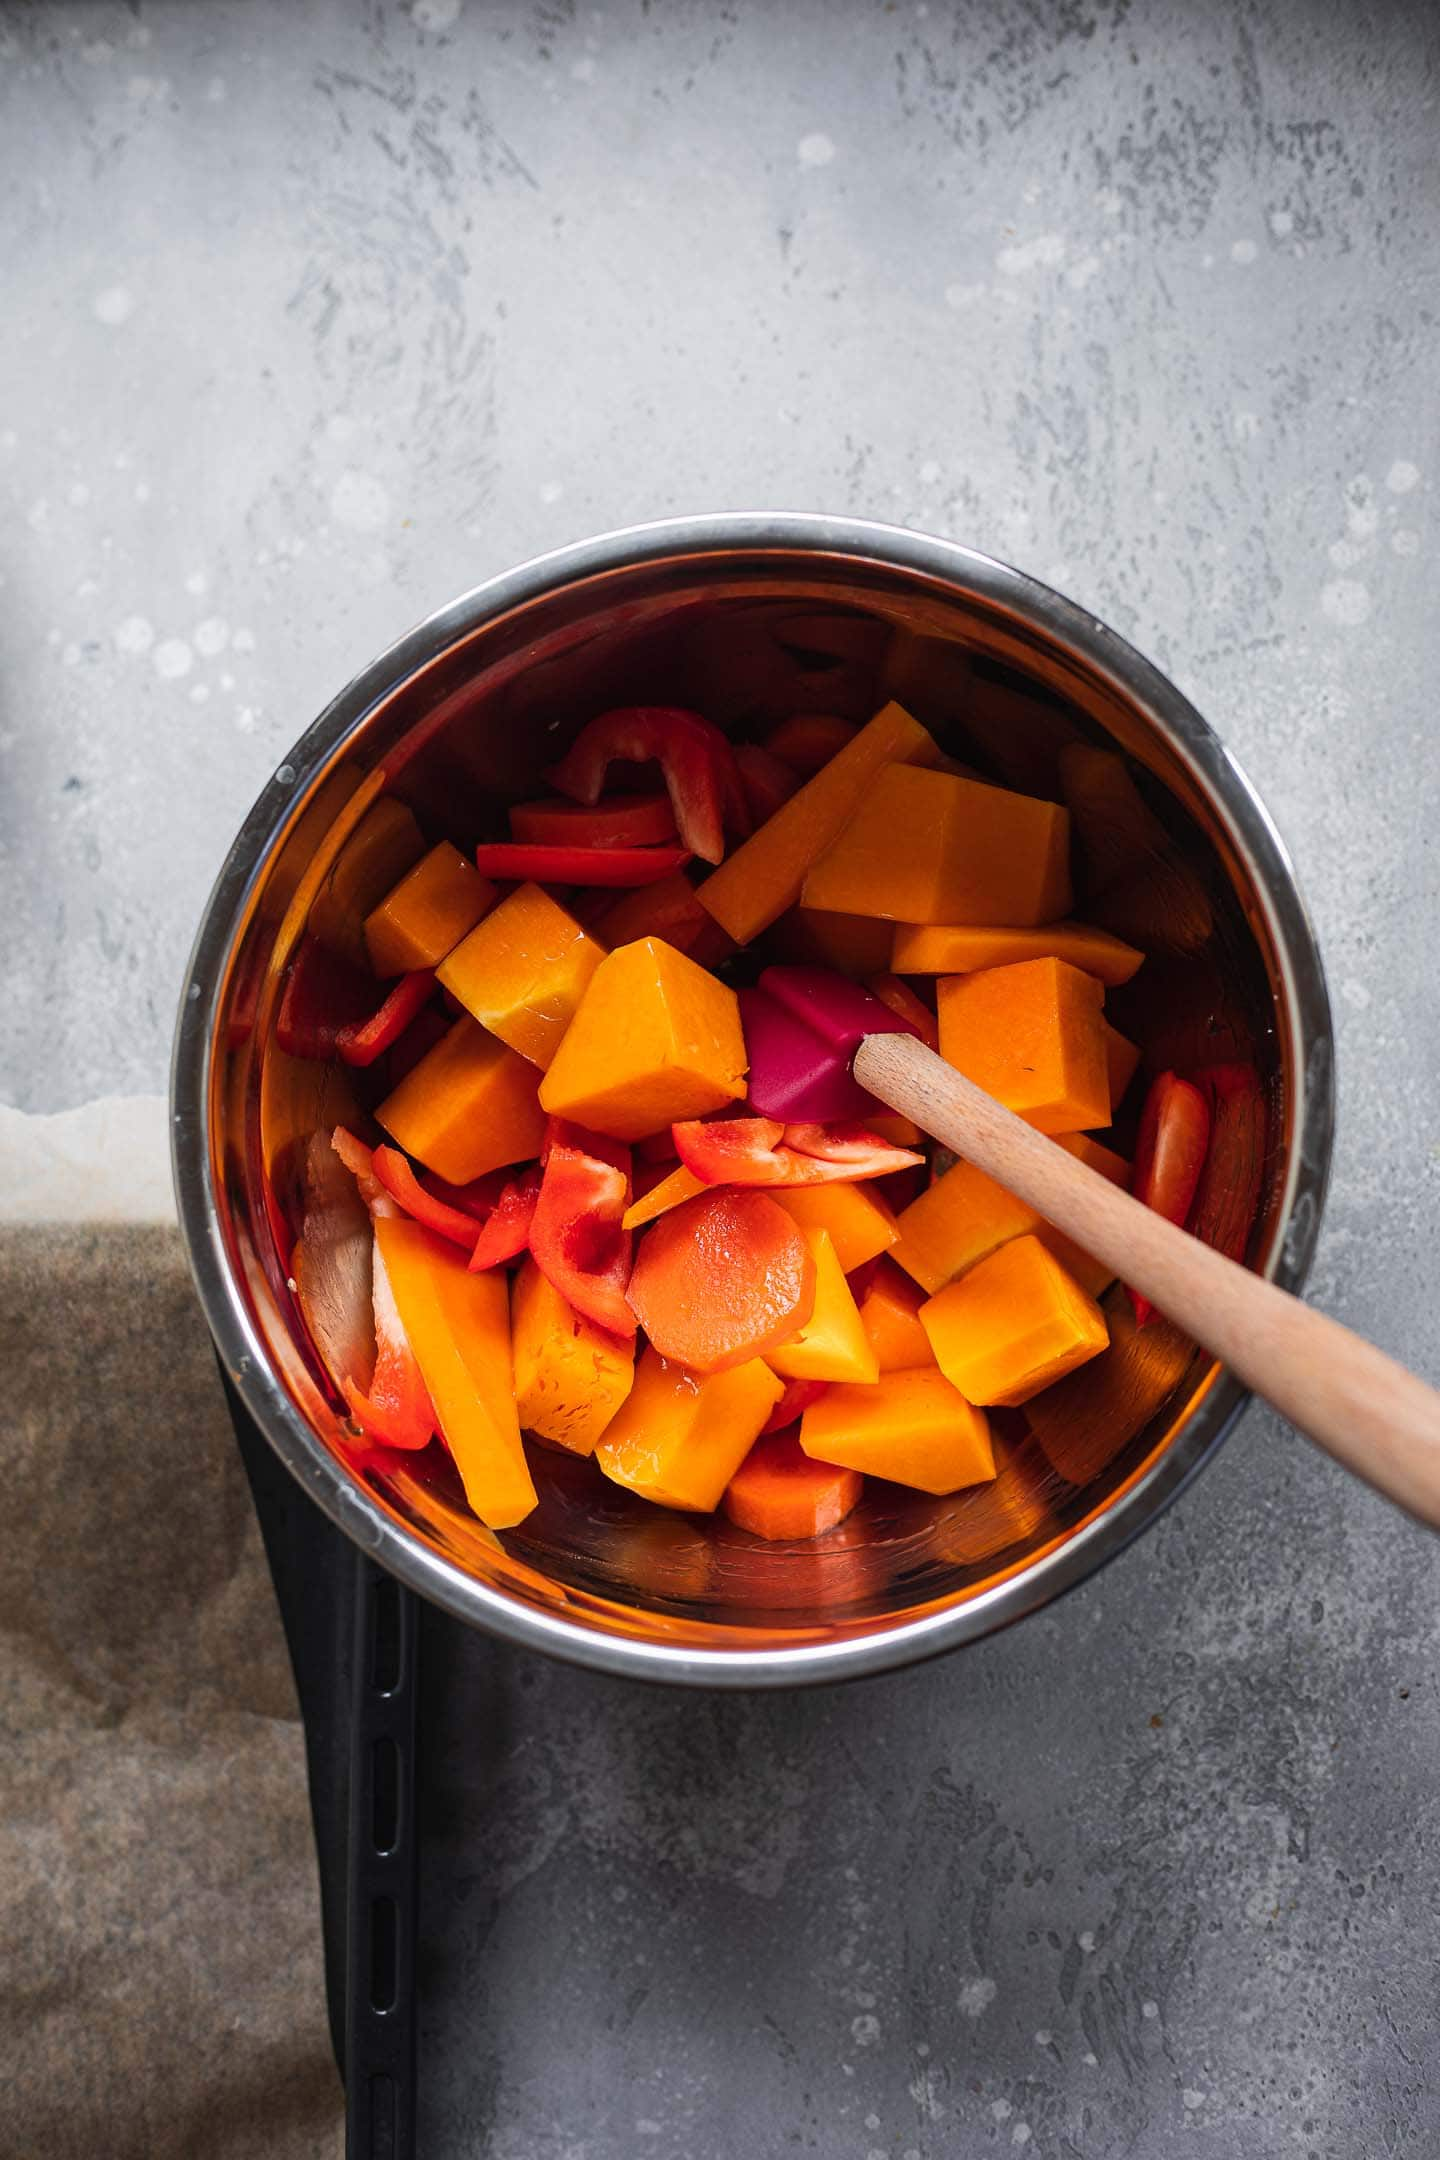 Butternut squash, peppers and carrots in a bowl